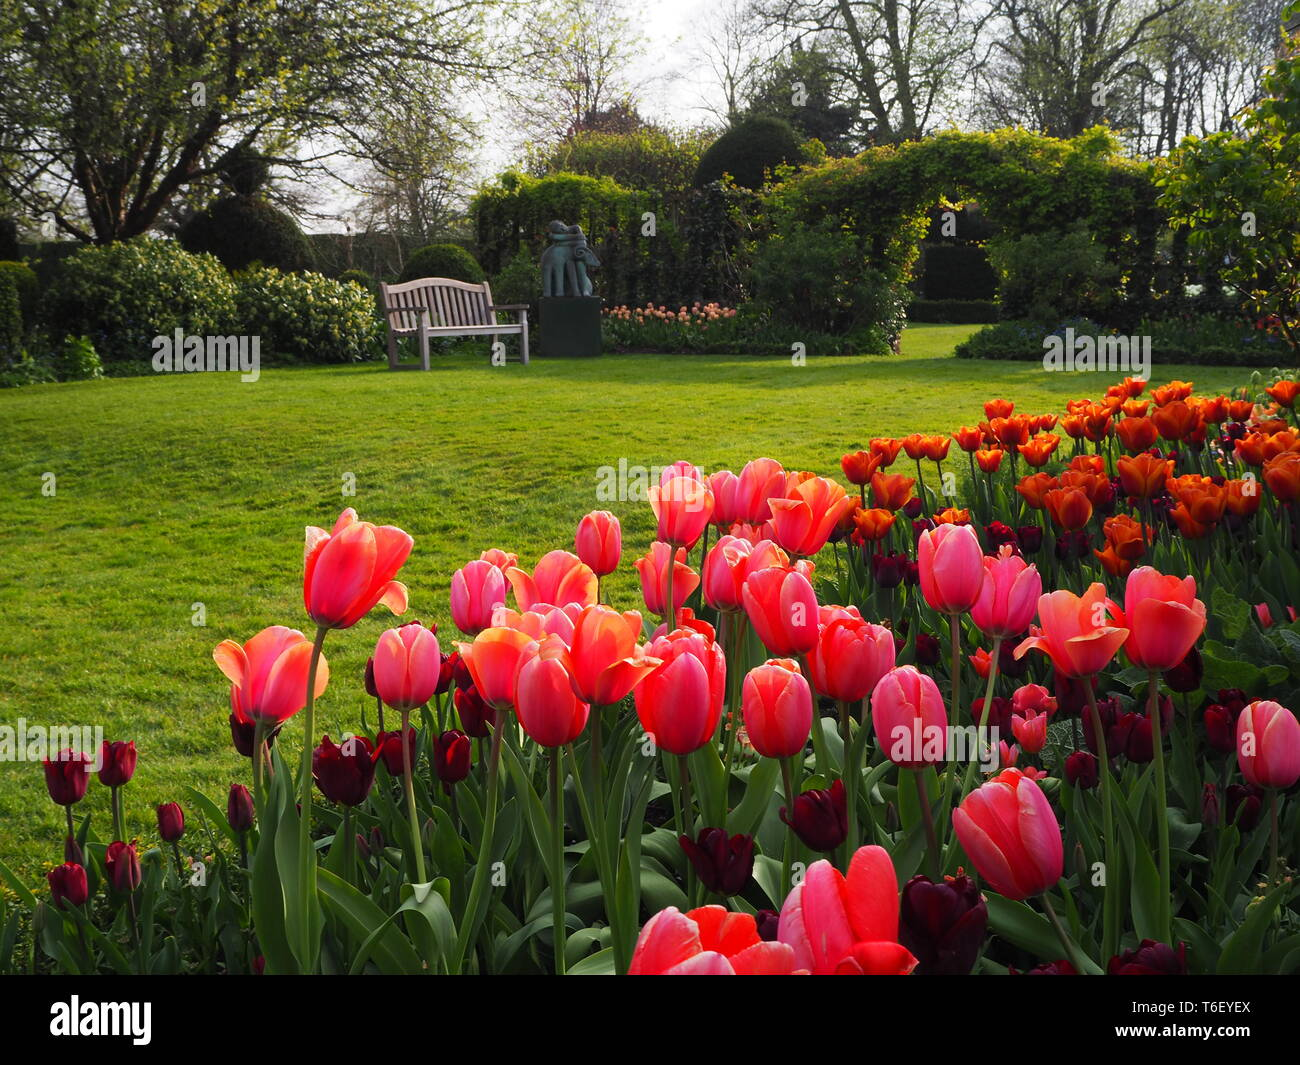 Chenies Manor Gardens in April view across the sunny lawn framed by colourful tulips and akebia archway and trellis; somehere to sit by the statue. - Stock Image